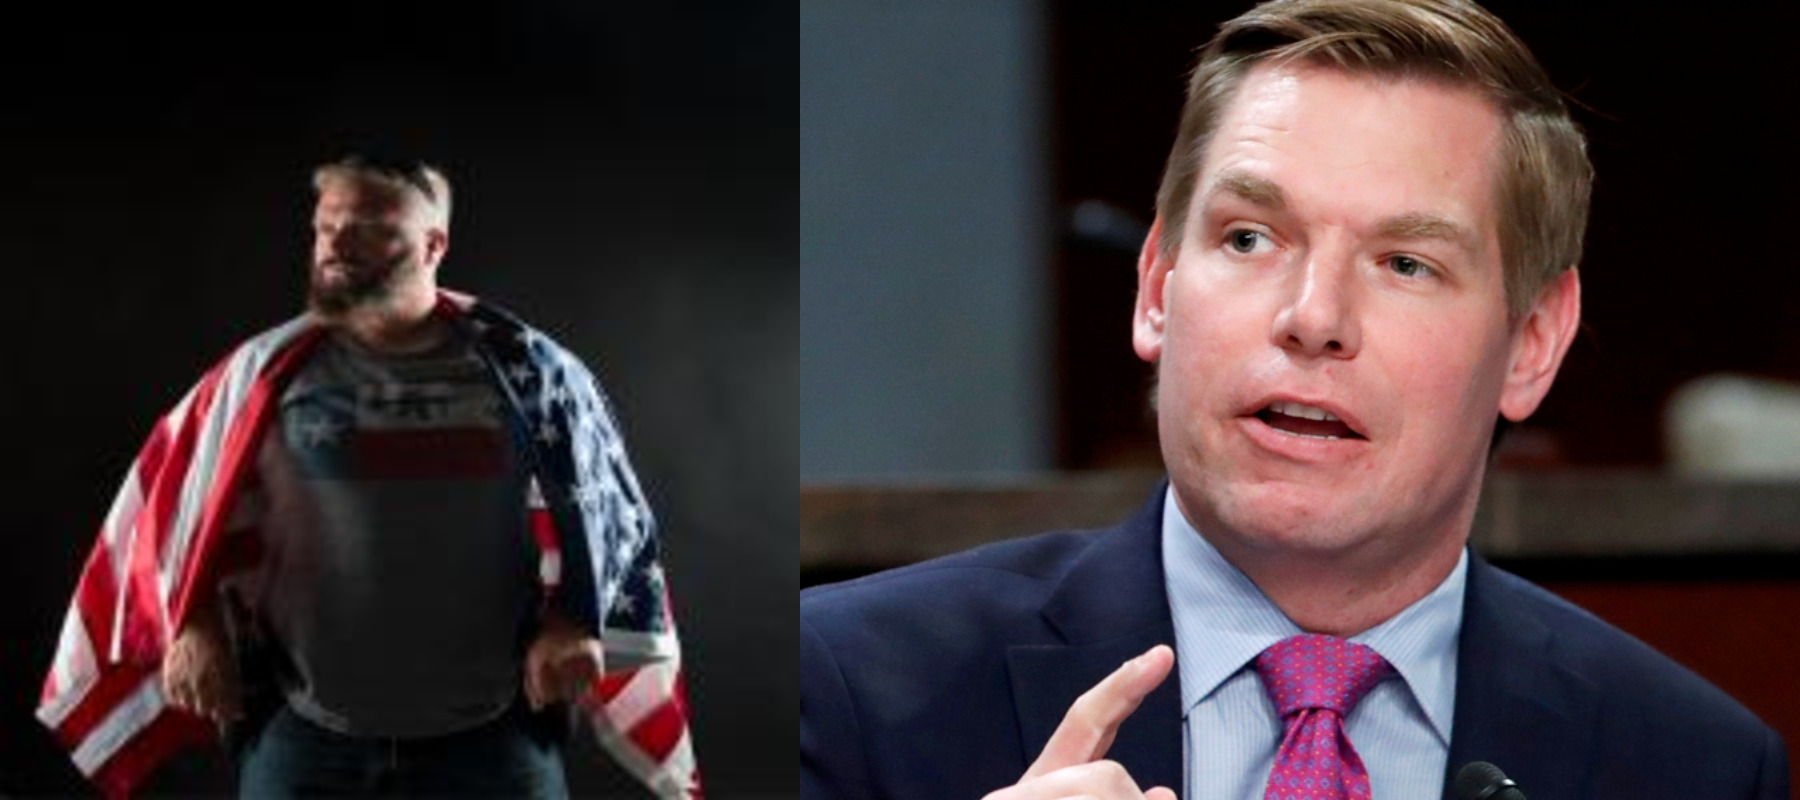 Joe Biggs and Eric Swalwell